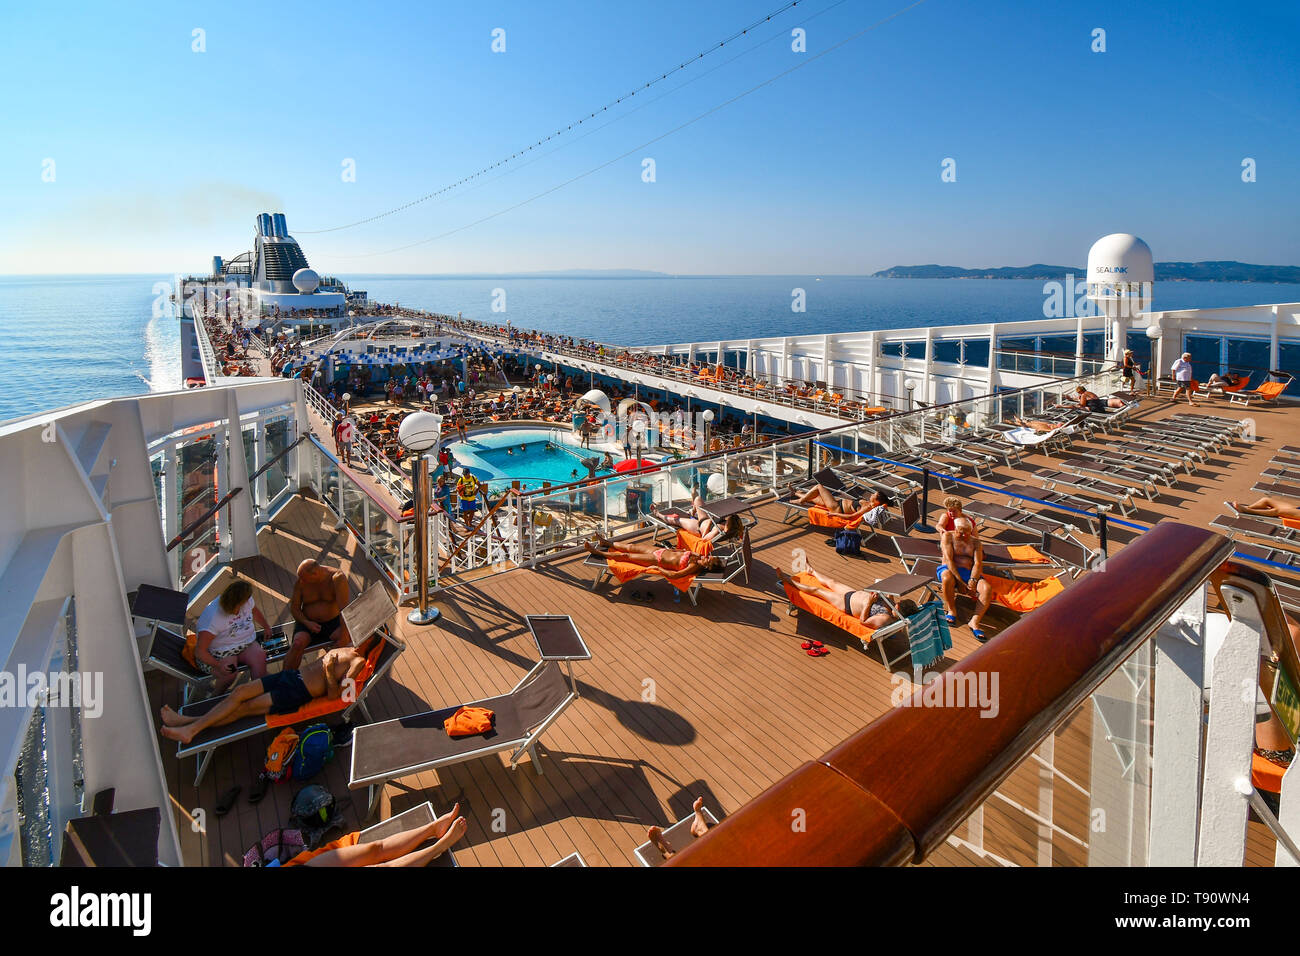 a-large-cruise-ship-with-tourists-on-deck-approaches-the-island-of-corfu-greece-on-a-summer-day-in-the-ionian-sea-T90WN4.jpg